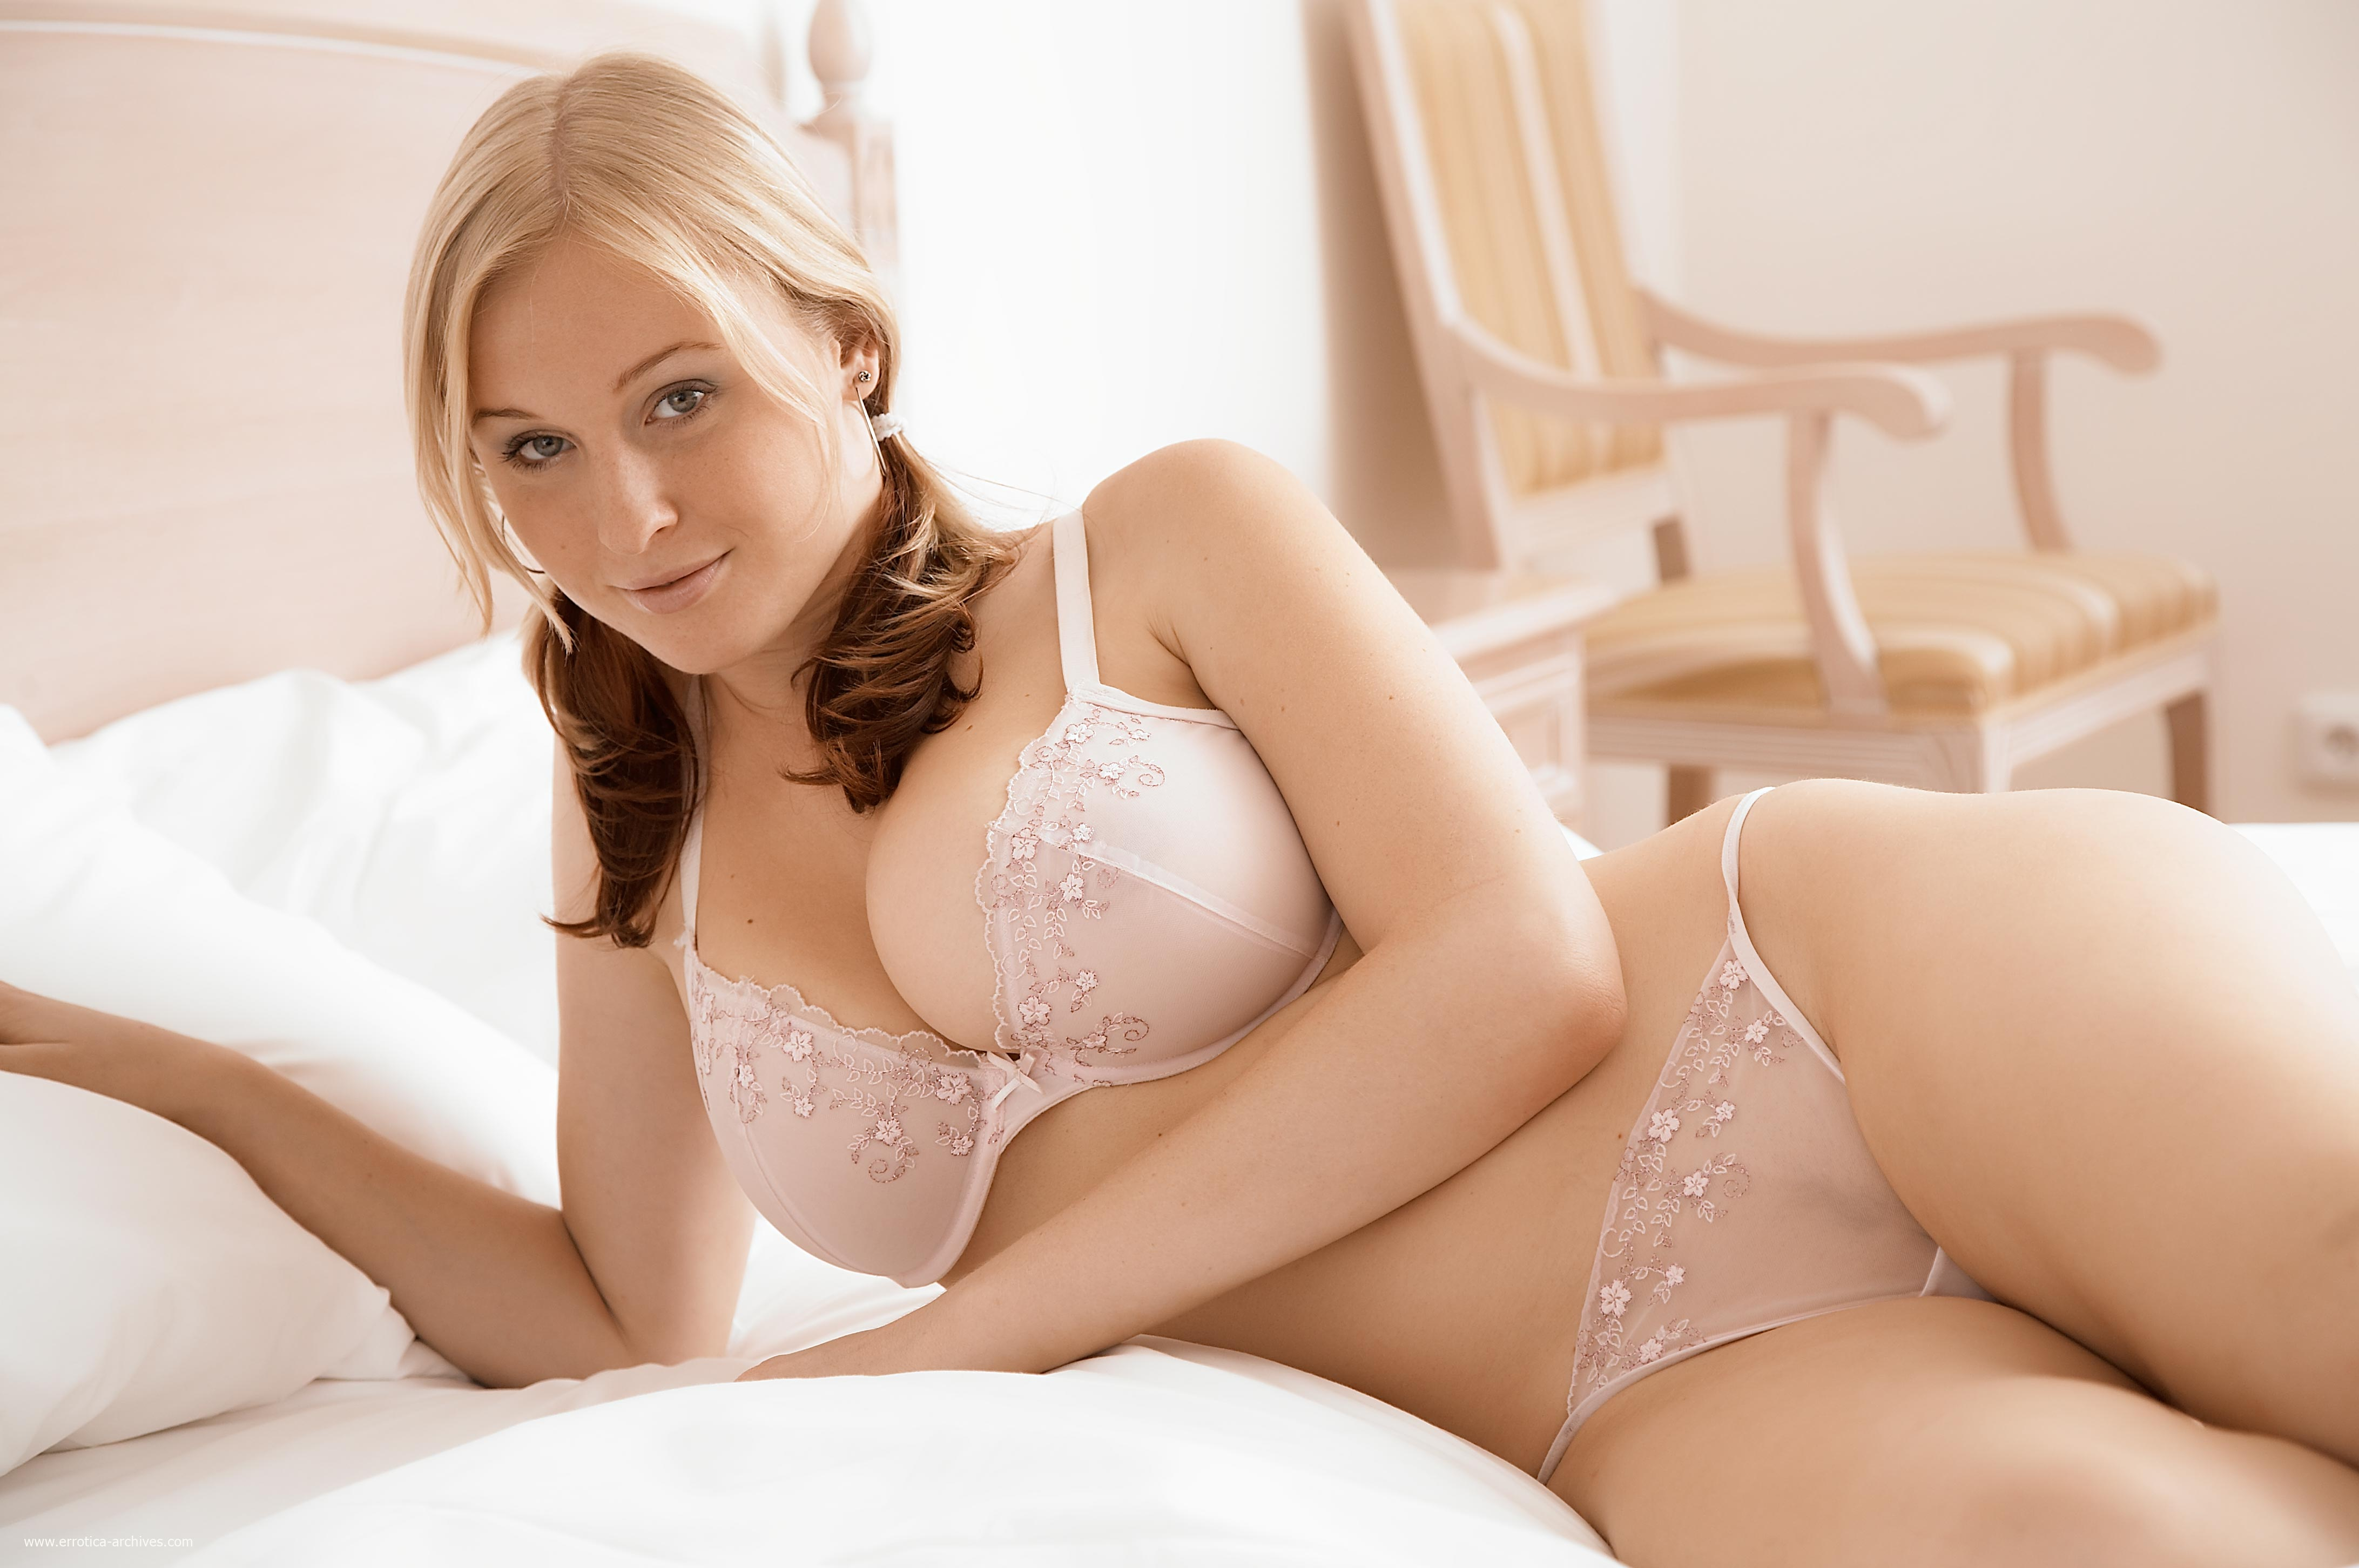 cool glamour in transparent lingerie